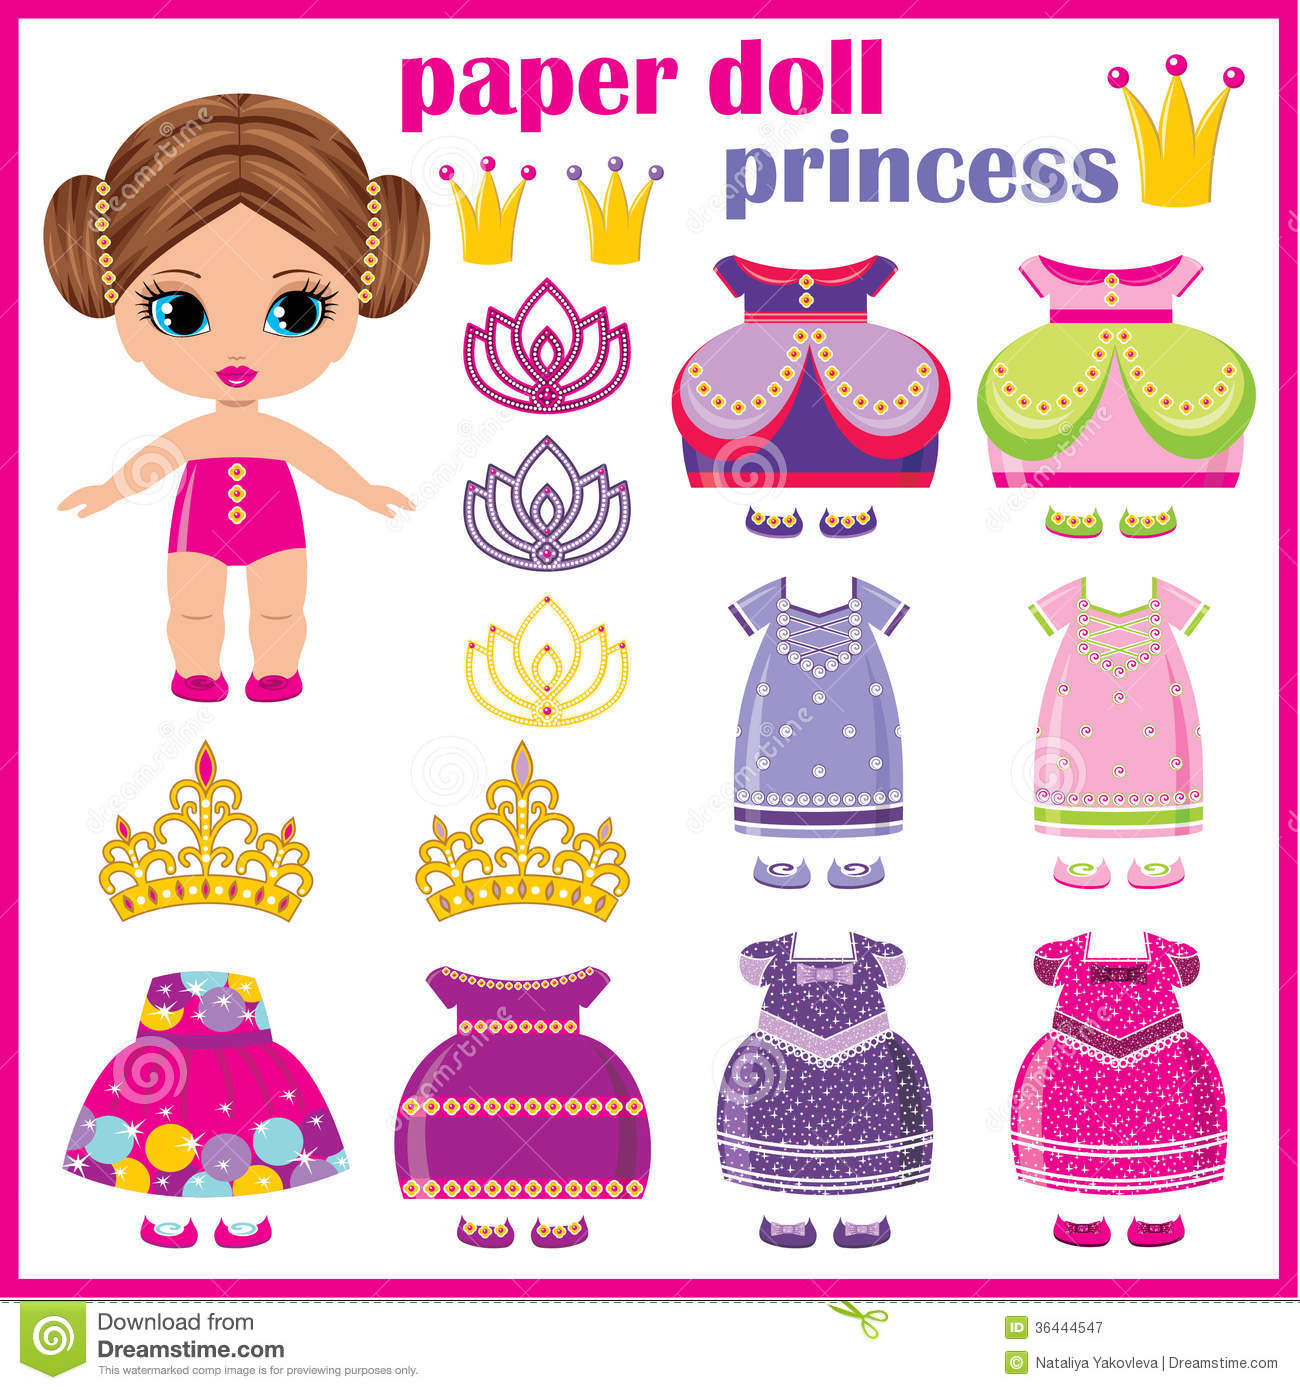 Princesse De Papier De Poupee Illustration De Vecteur